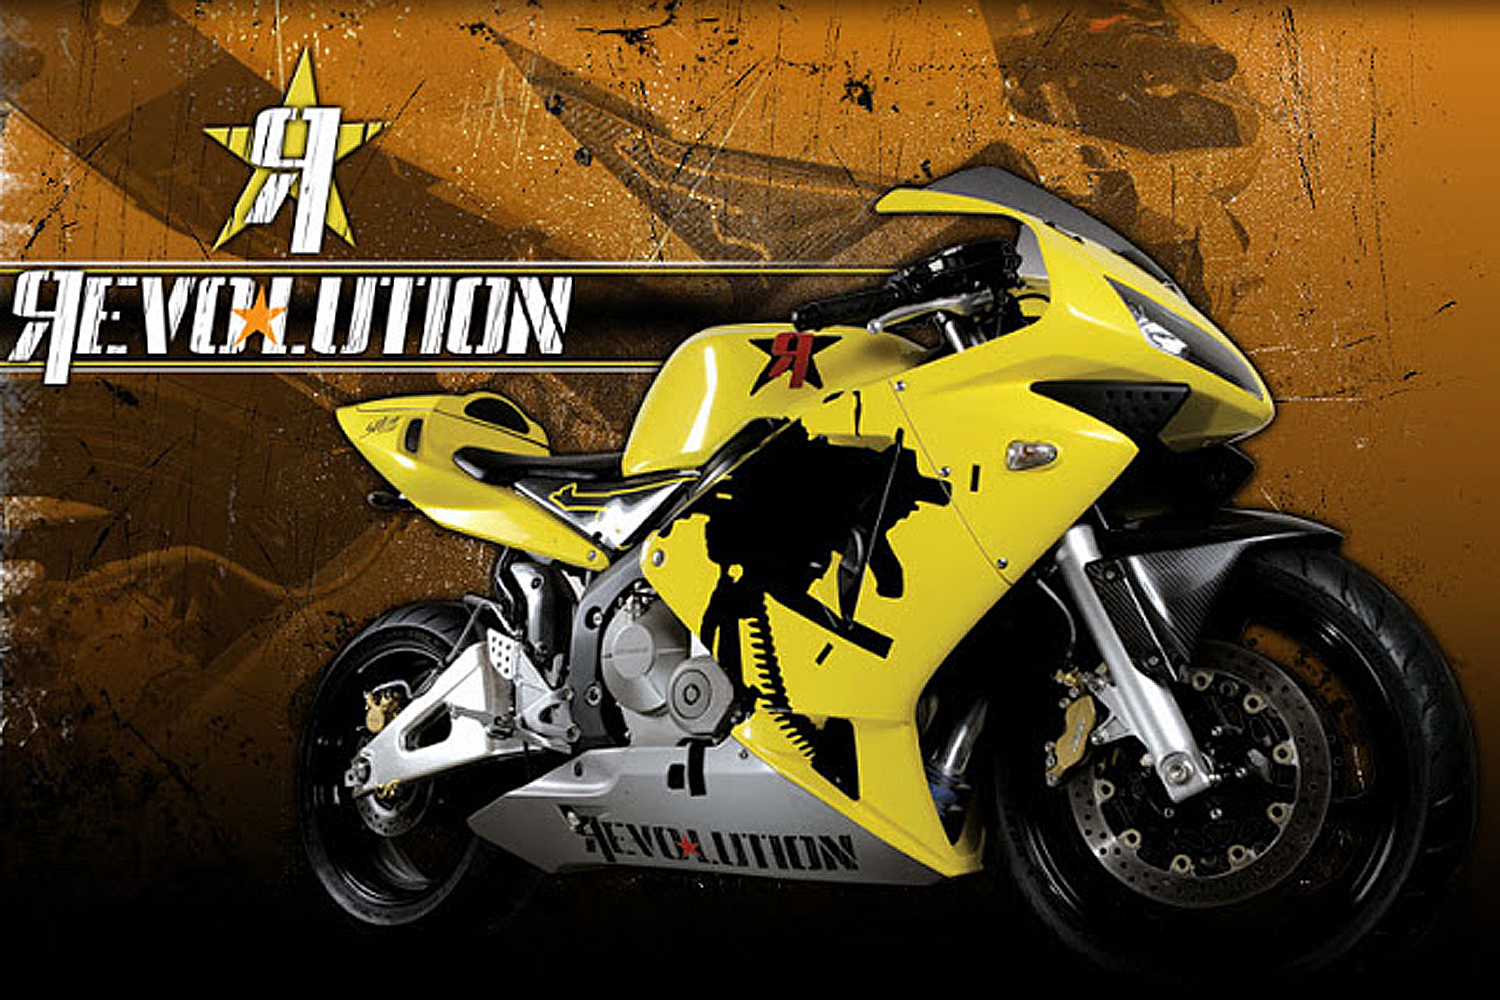 Revolution Motorcycles turbo charged 600RR